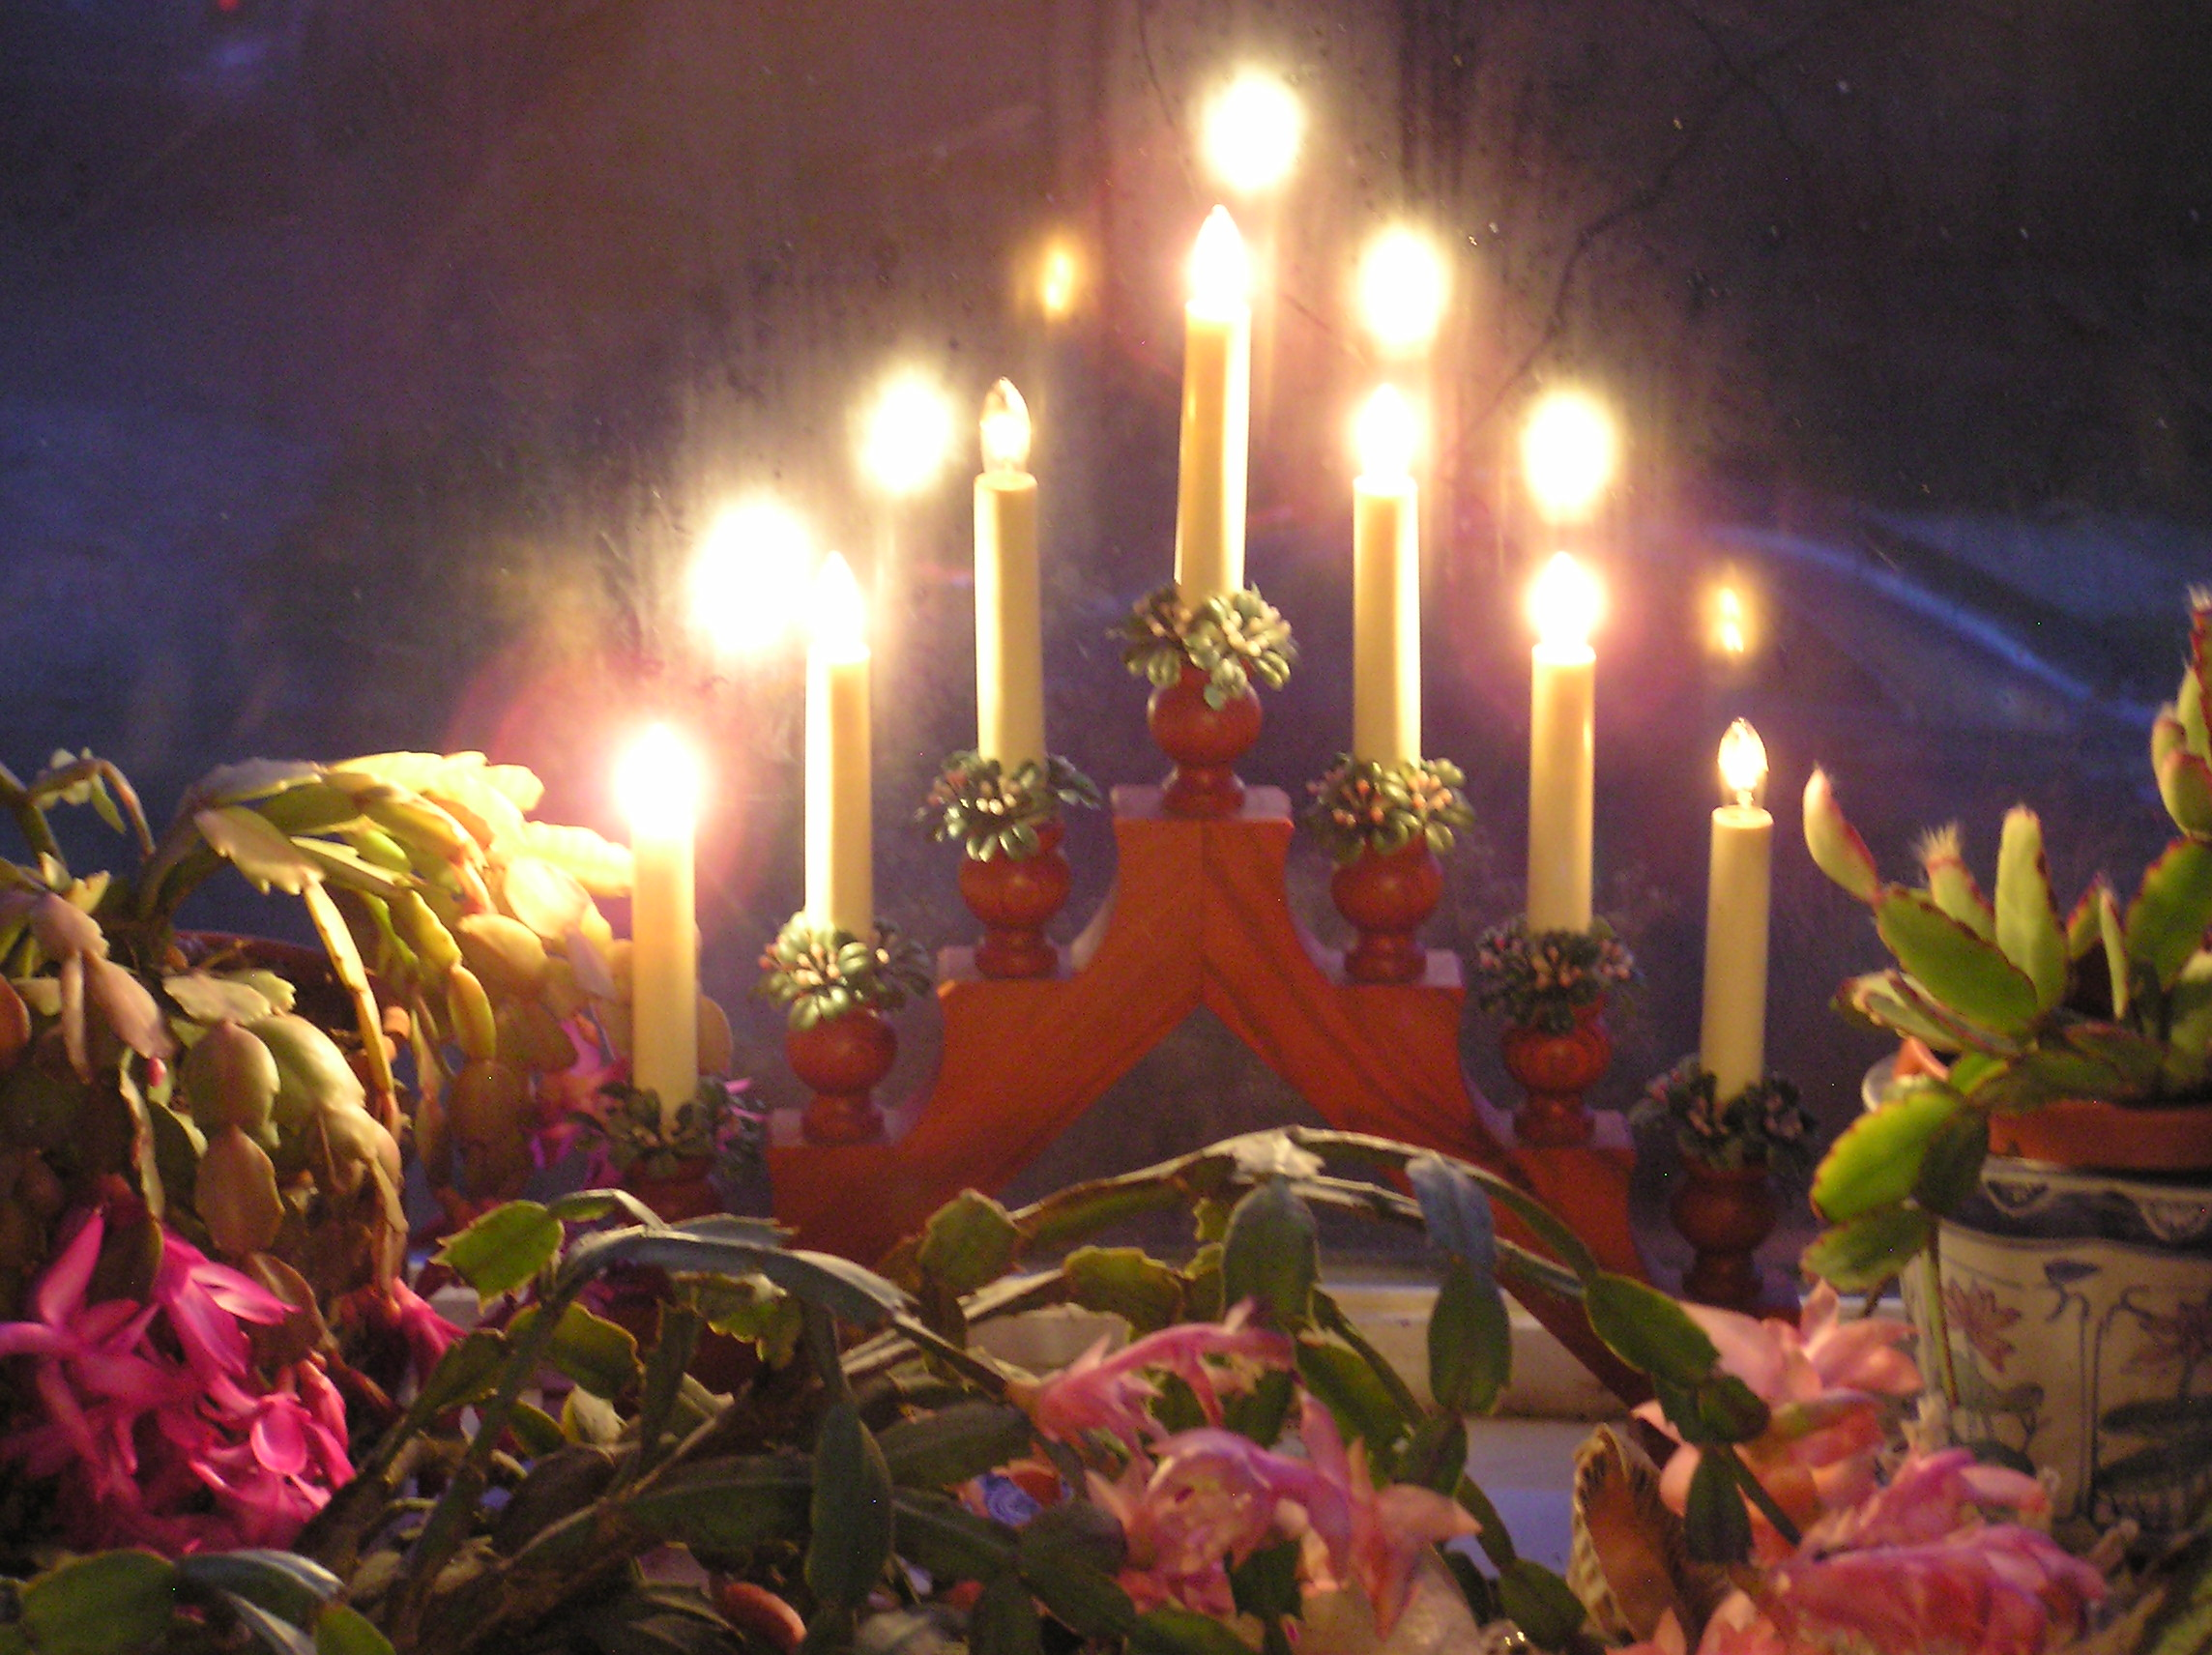 Christmas candles photo by Christine Sine